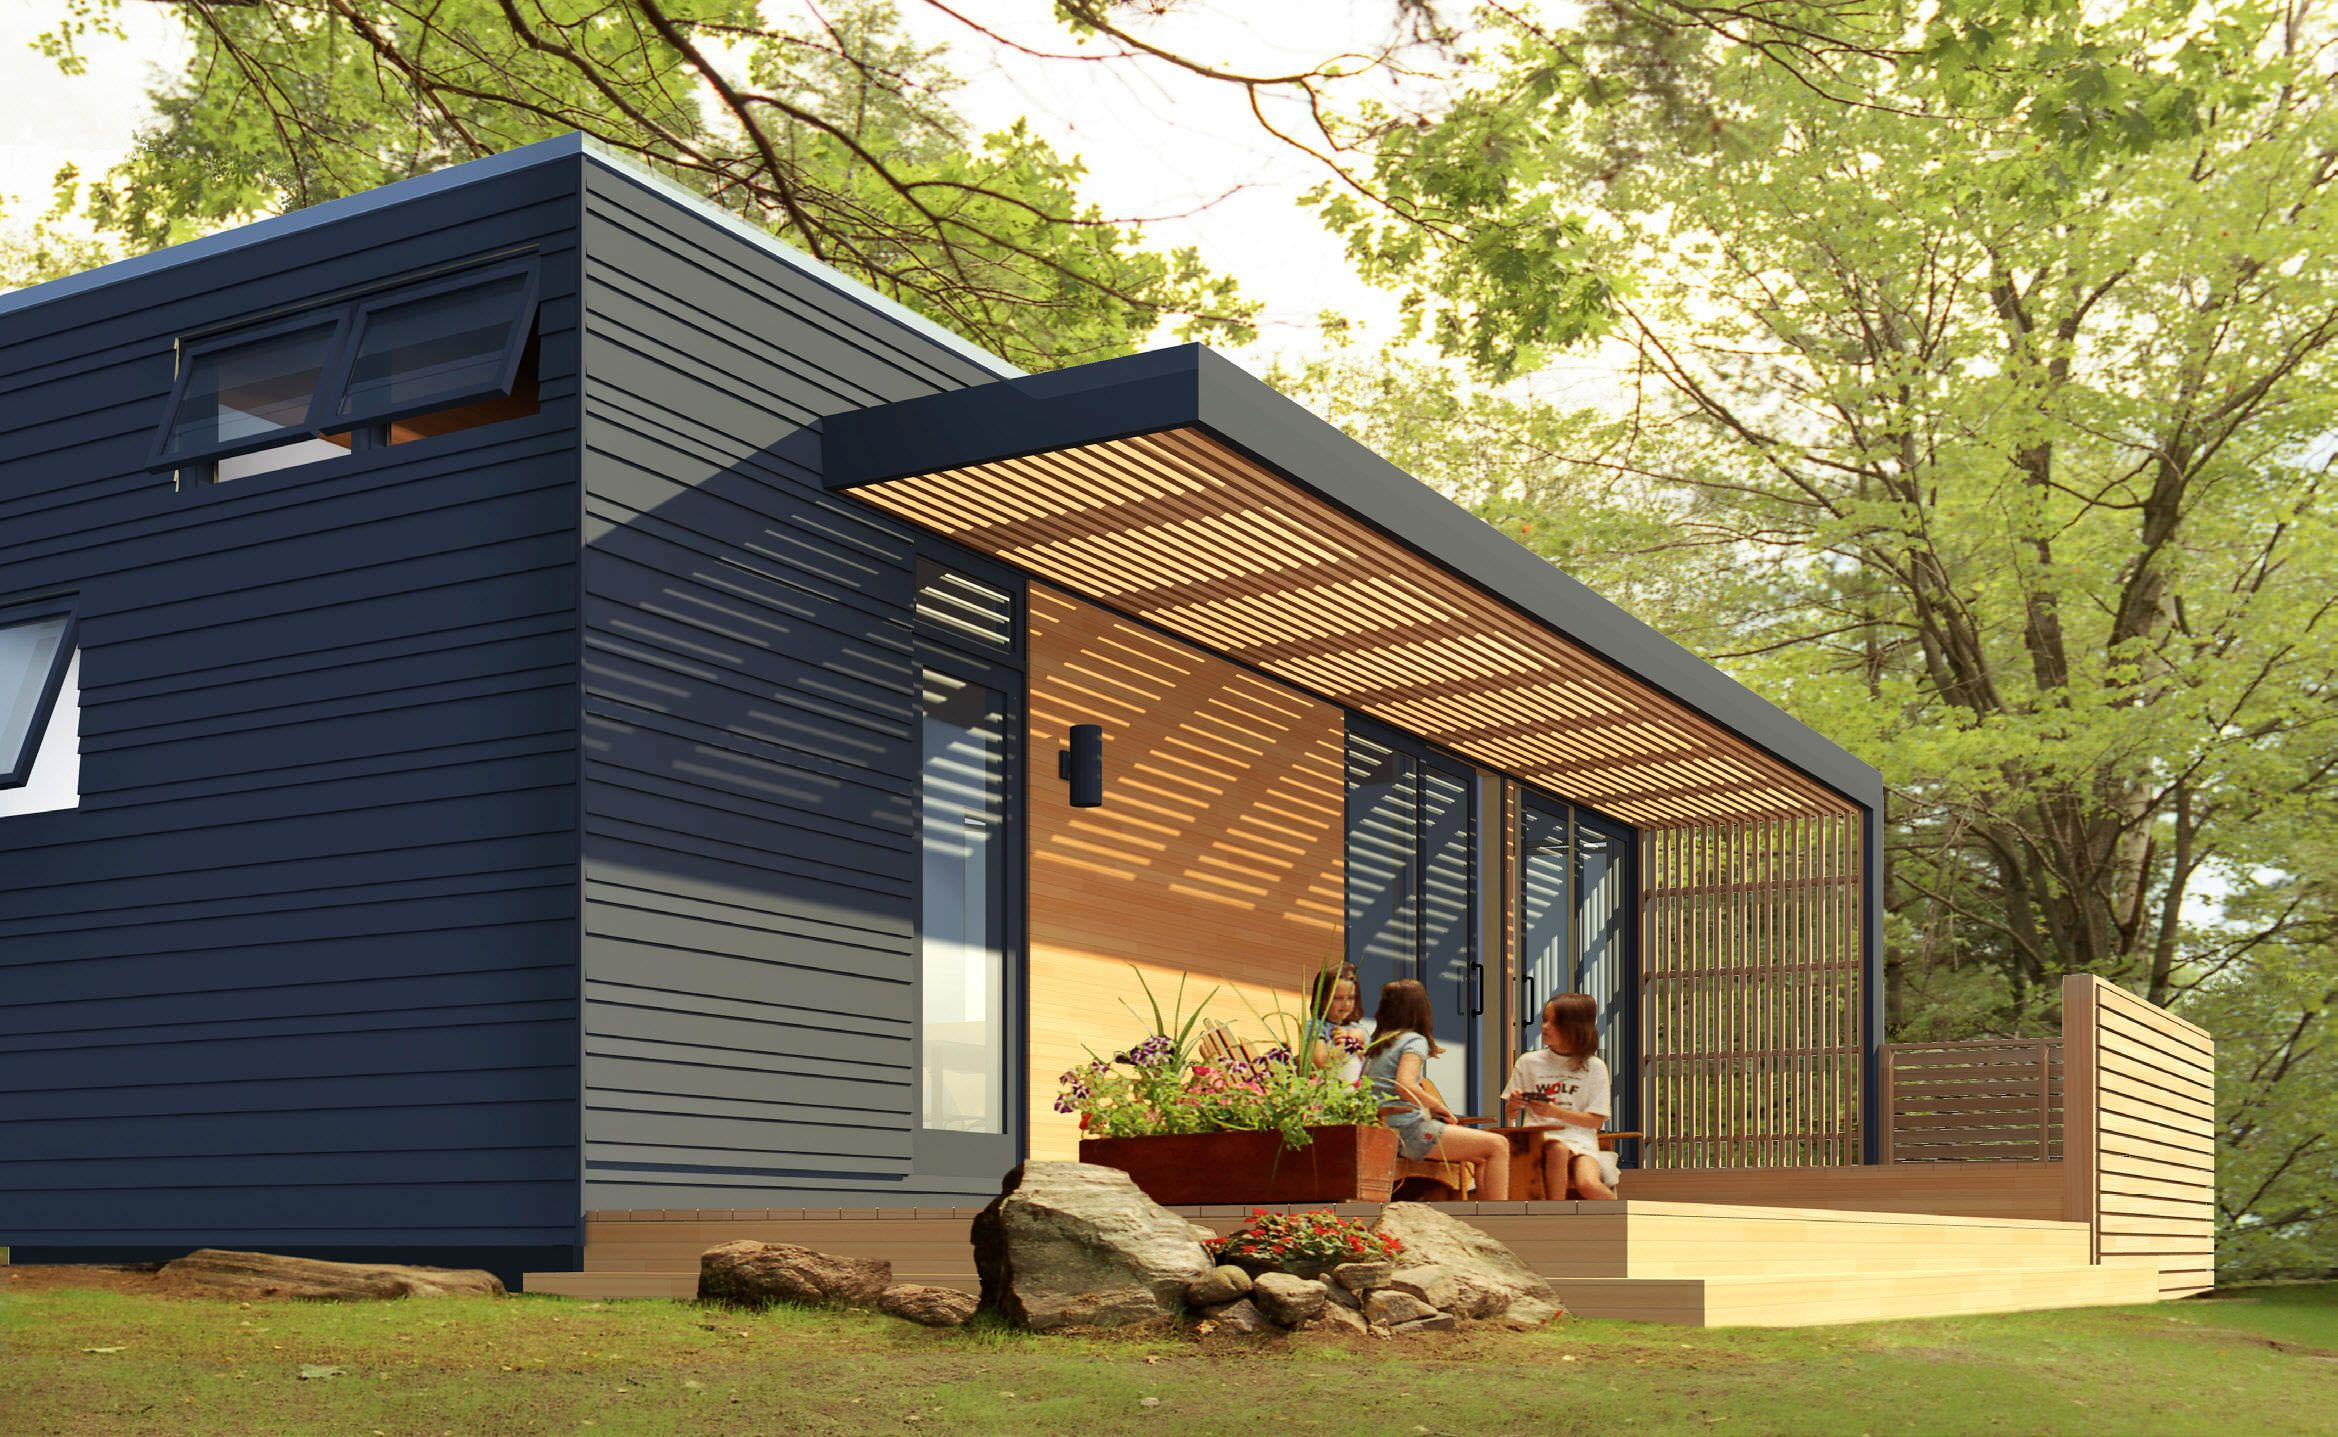 Image of Adorable Prefab Garage Apartment Barndominium